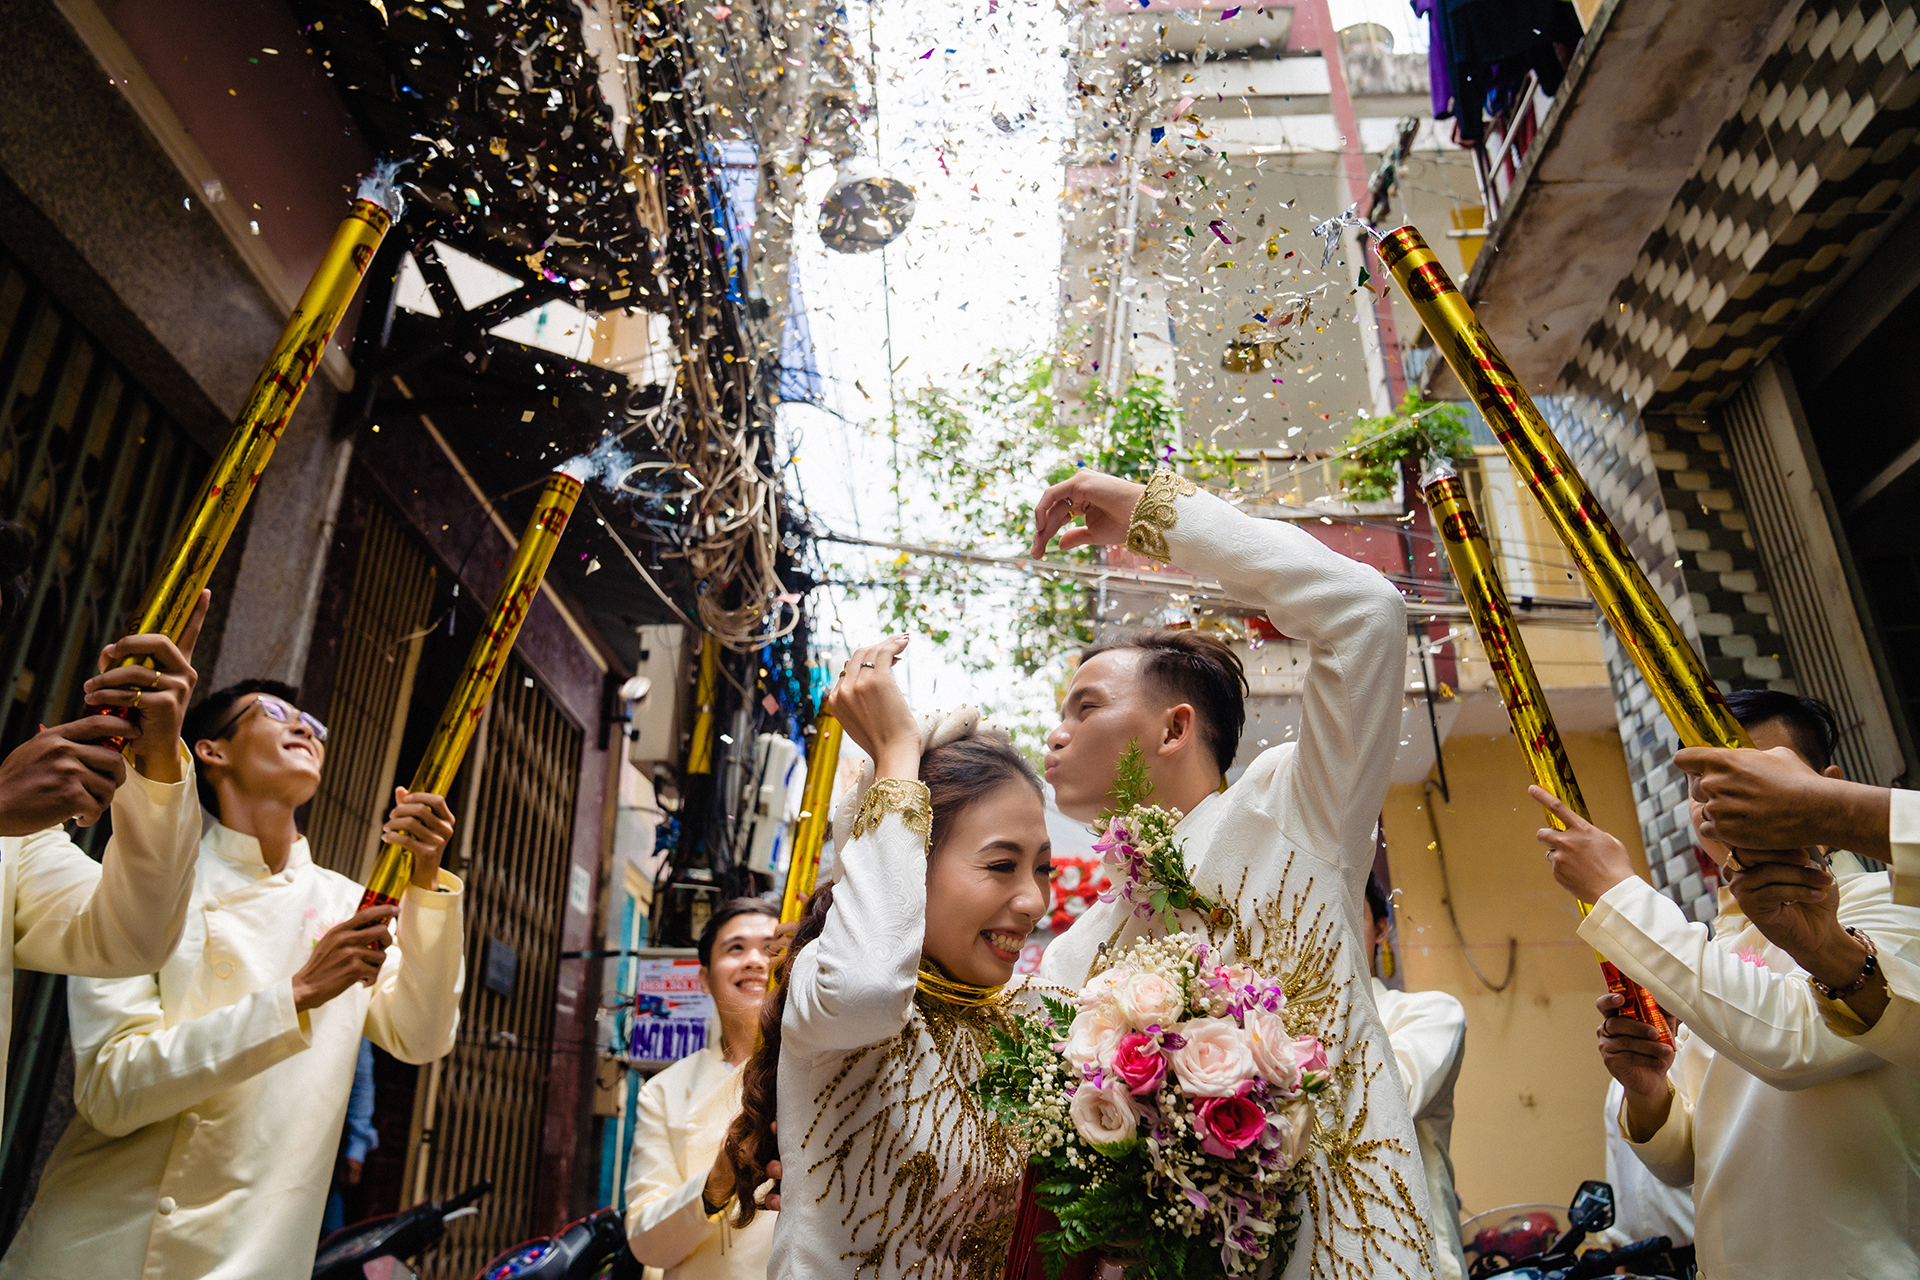 Photo of the bride and groom as the groomsmen fire confetti cannons around them by a wedding photographer.